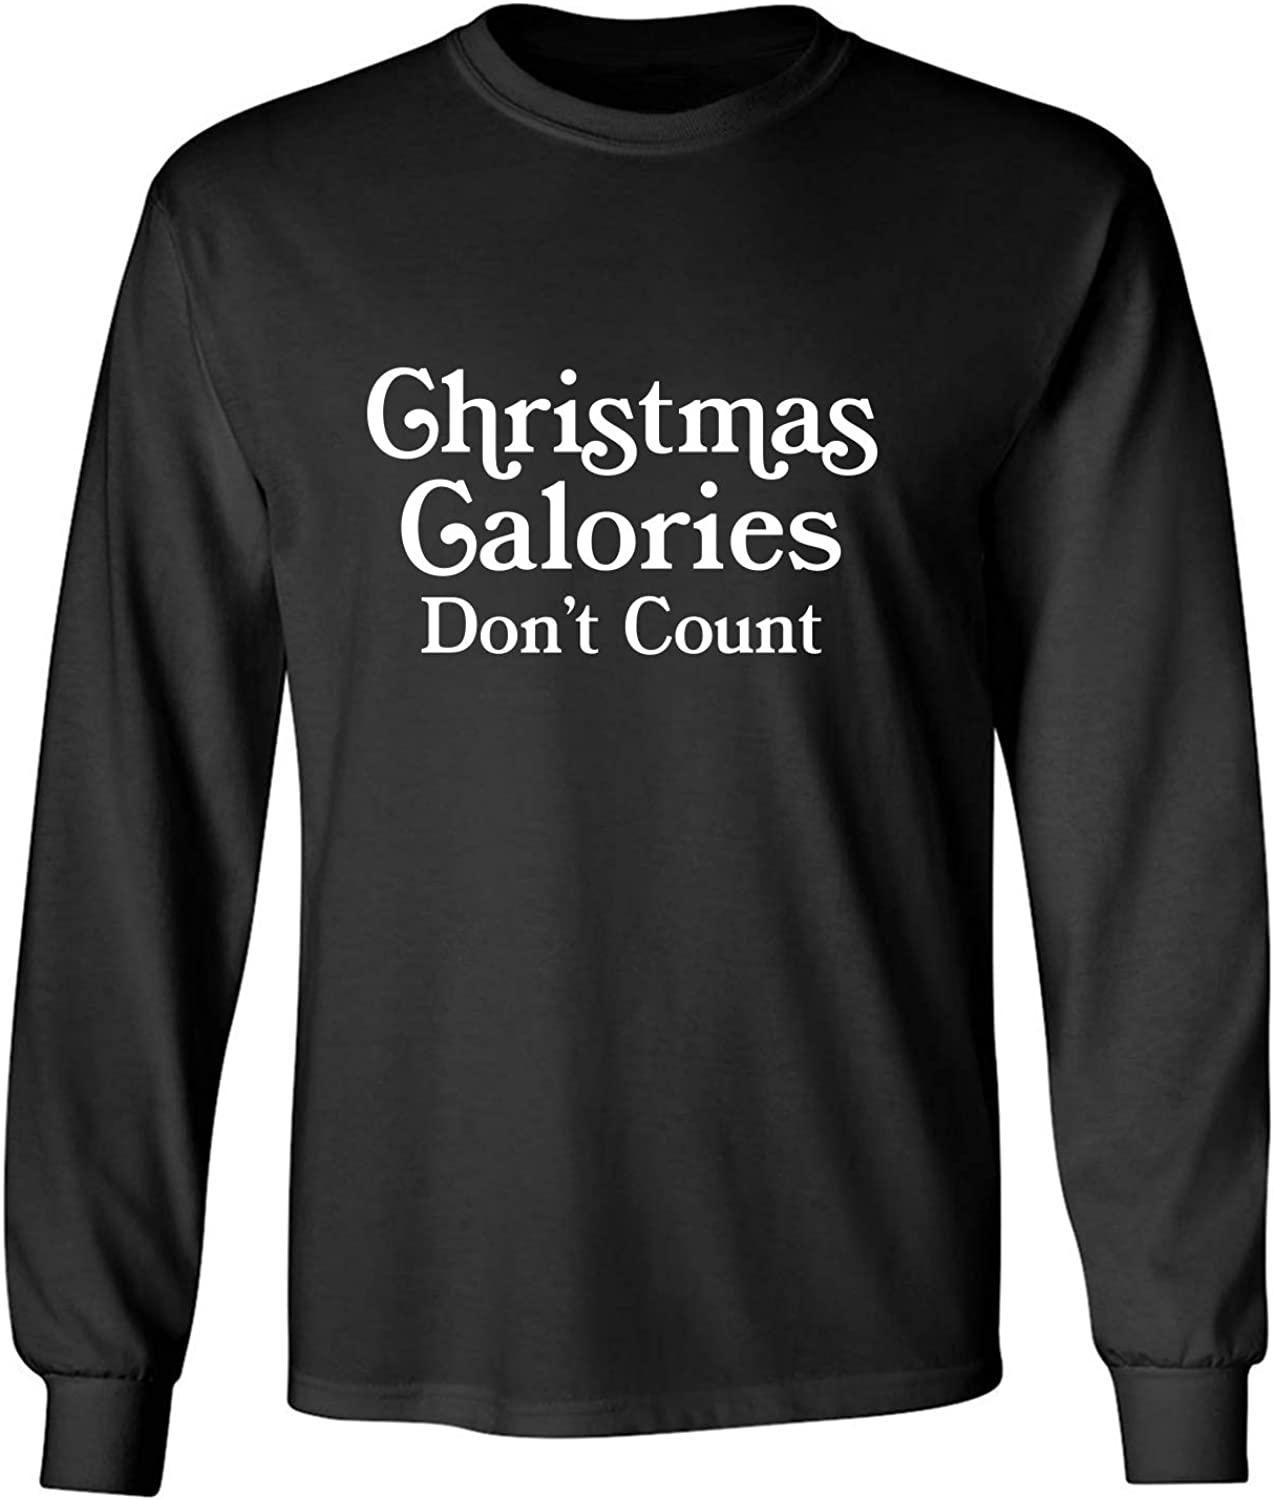 Christmas Calories Don't Count Adult Long Sleeve T-Shirt in Black - XXX-Large